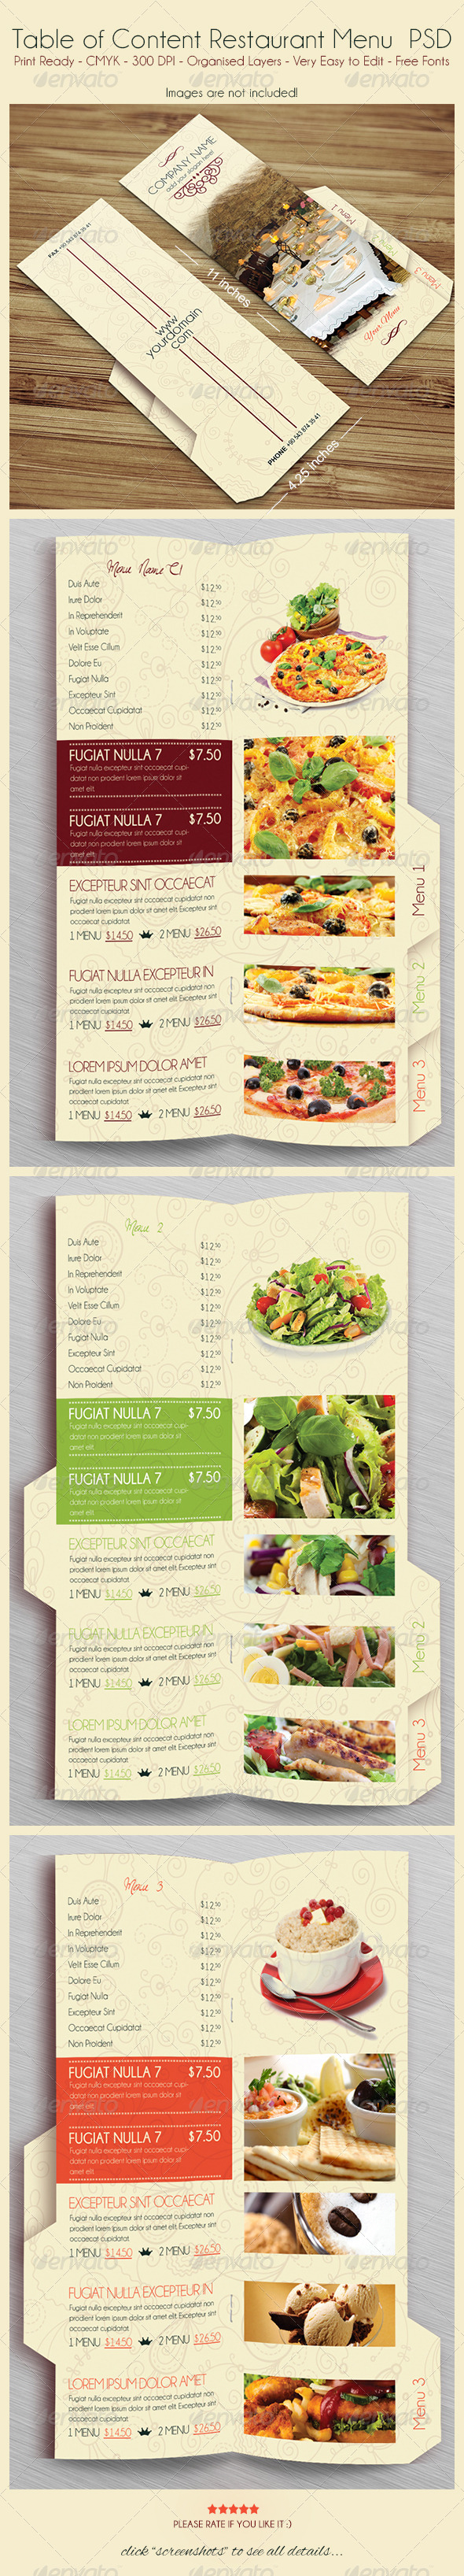 GraphicRiver Table of Content Restaurant Menu 5540299